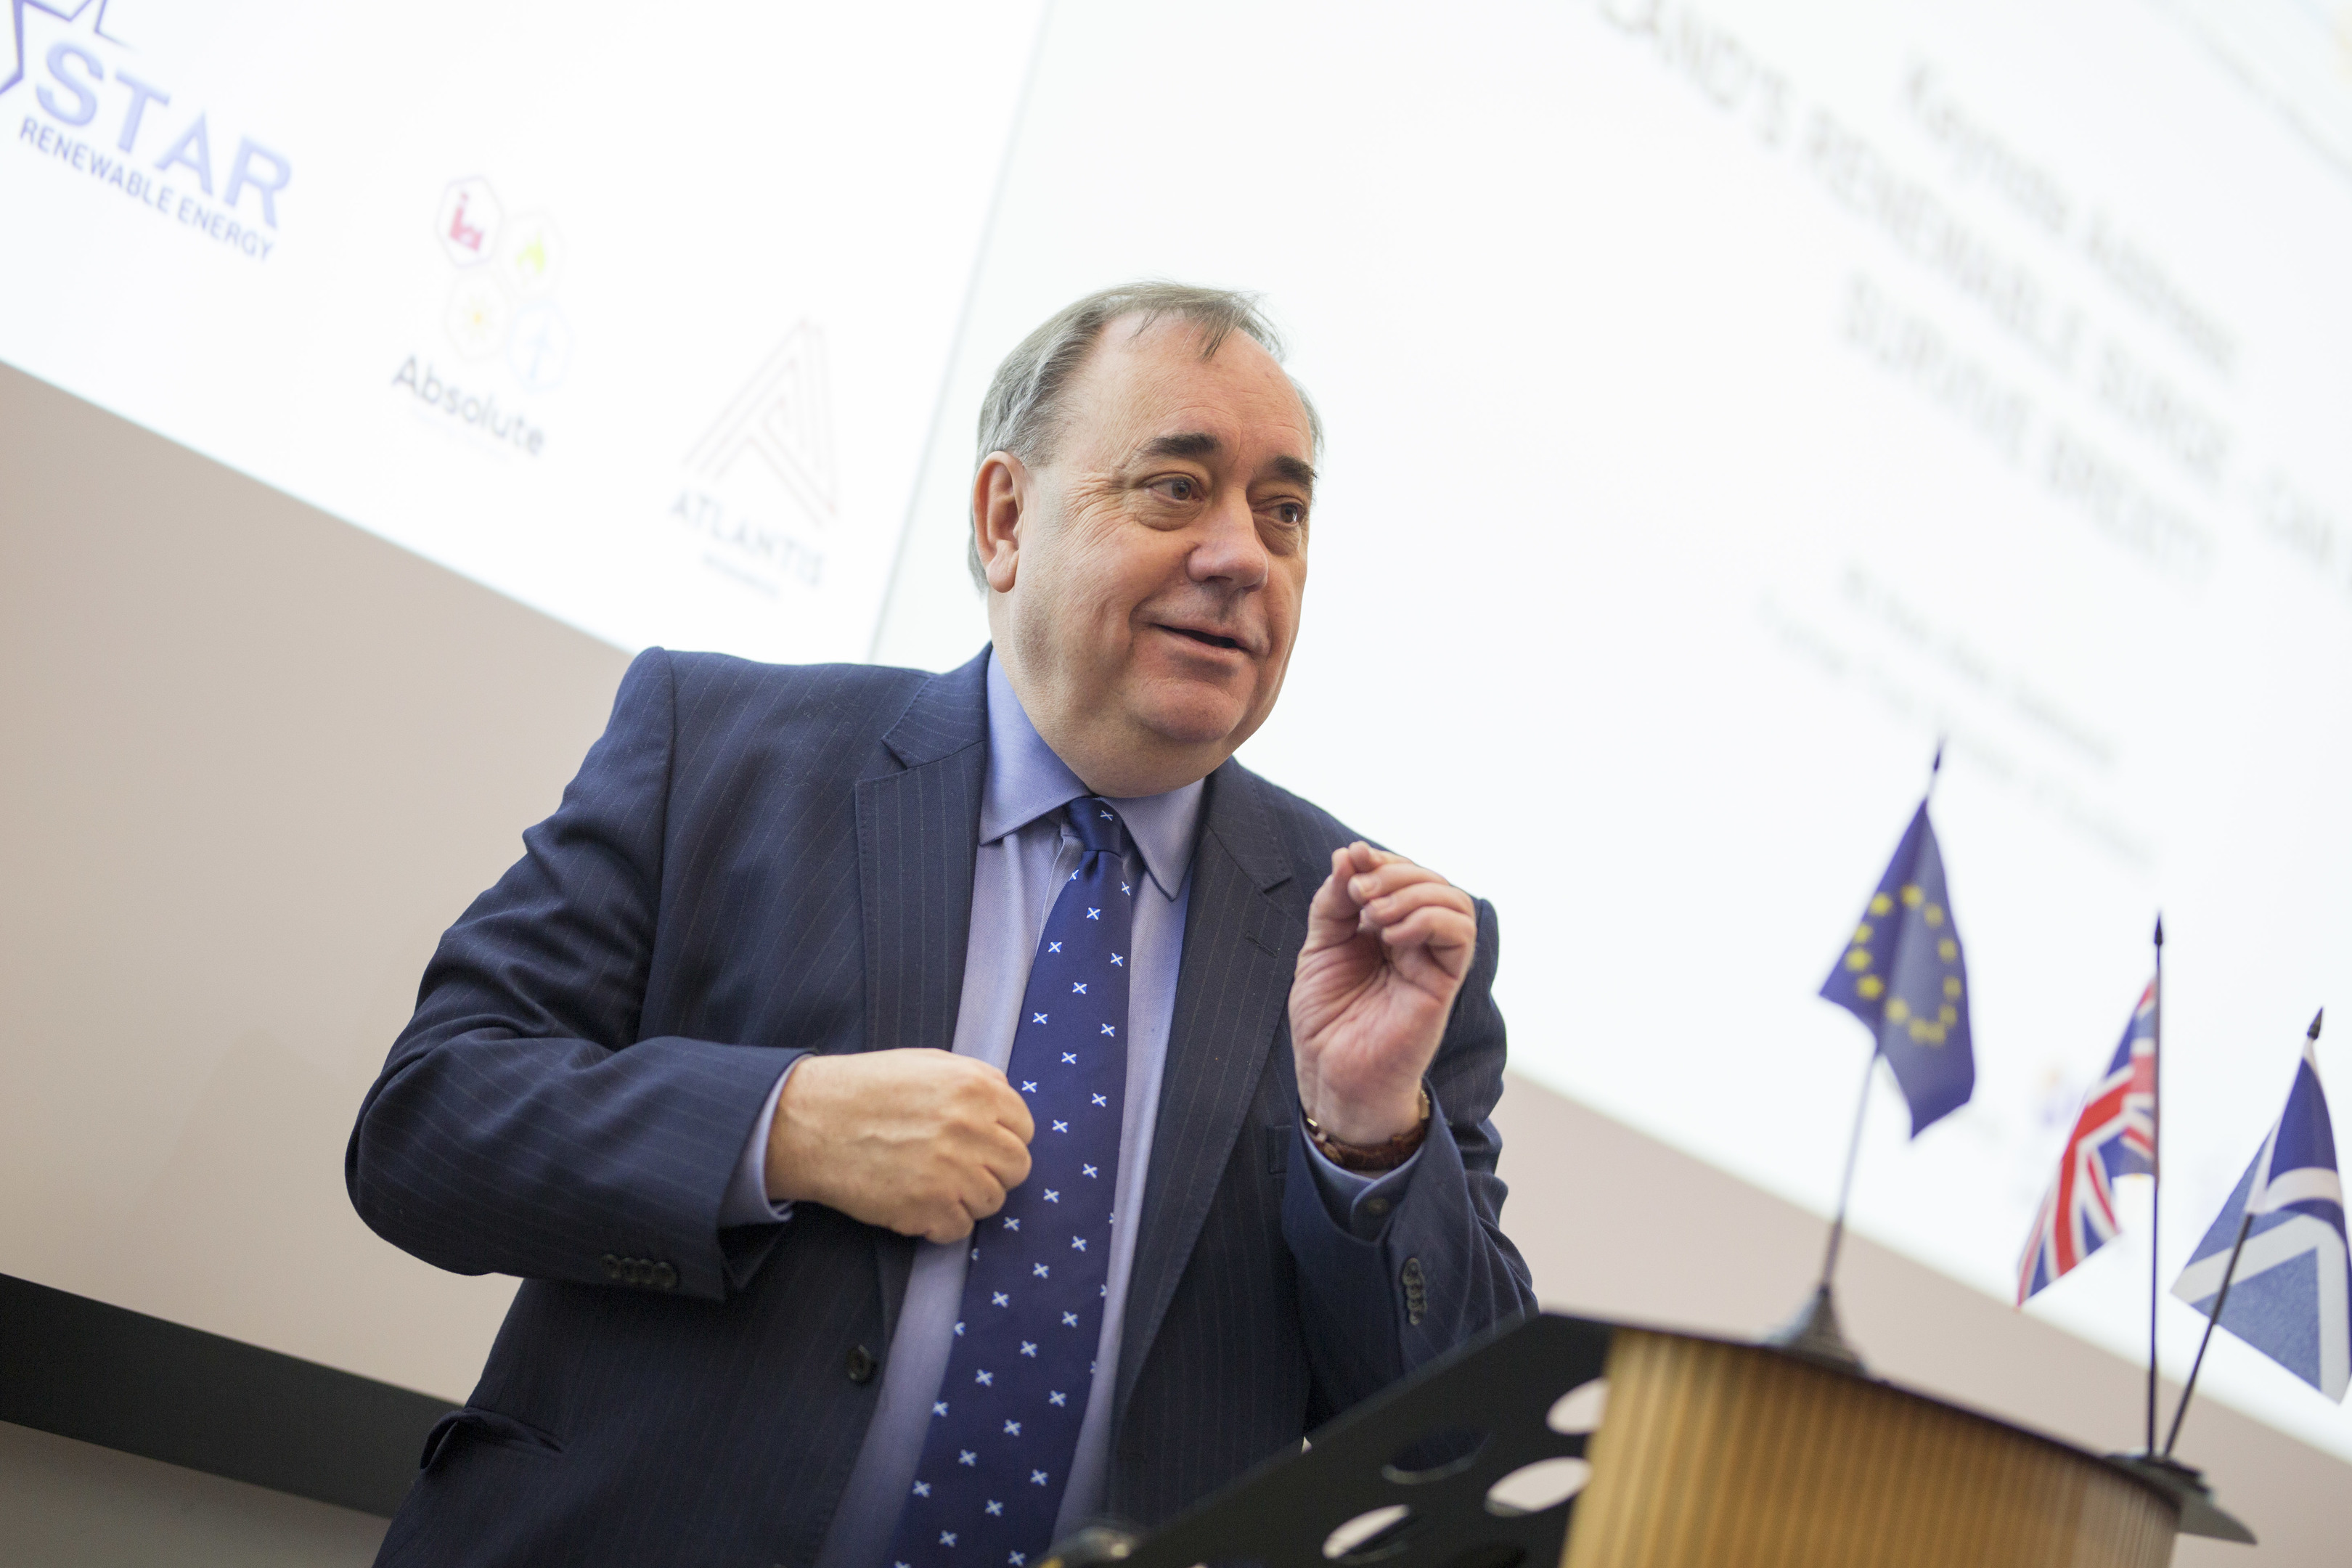 First Minister Alex Salmond. Photography by Dundee University